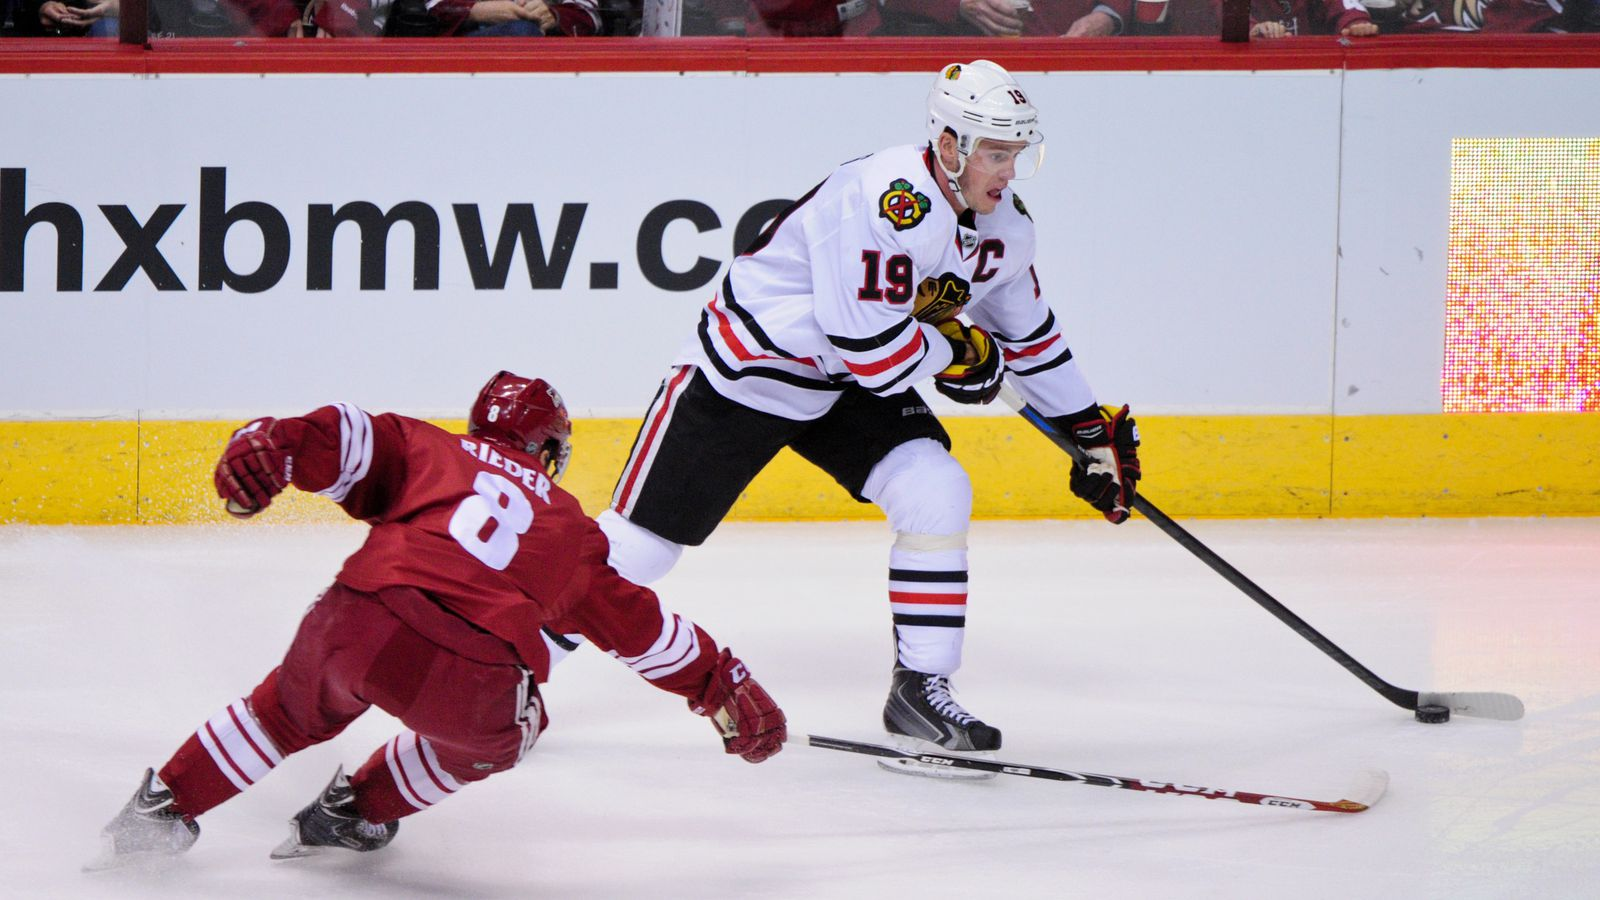 Shaw, Richards score in 2-1 win over Coyotes